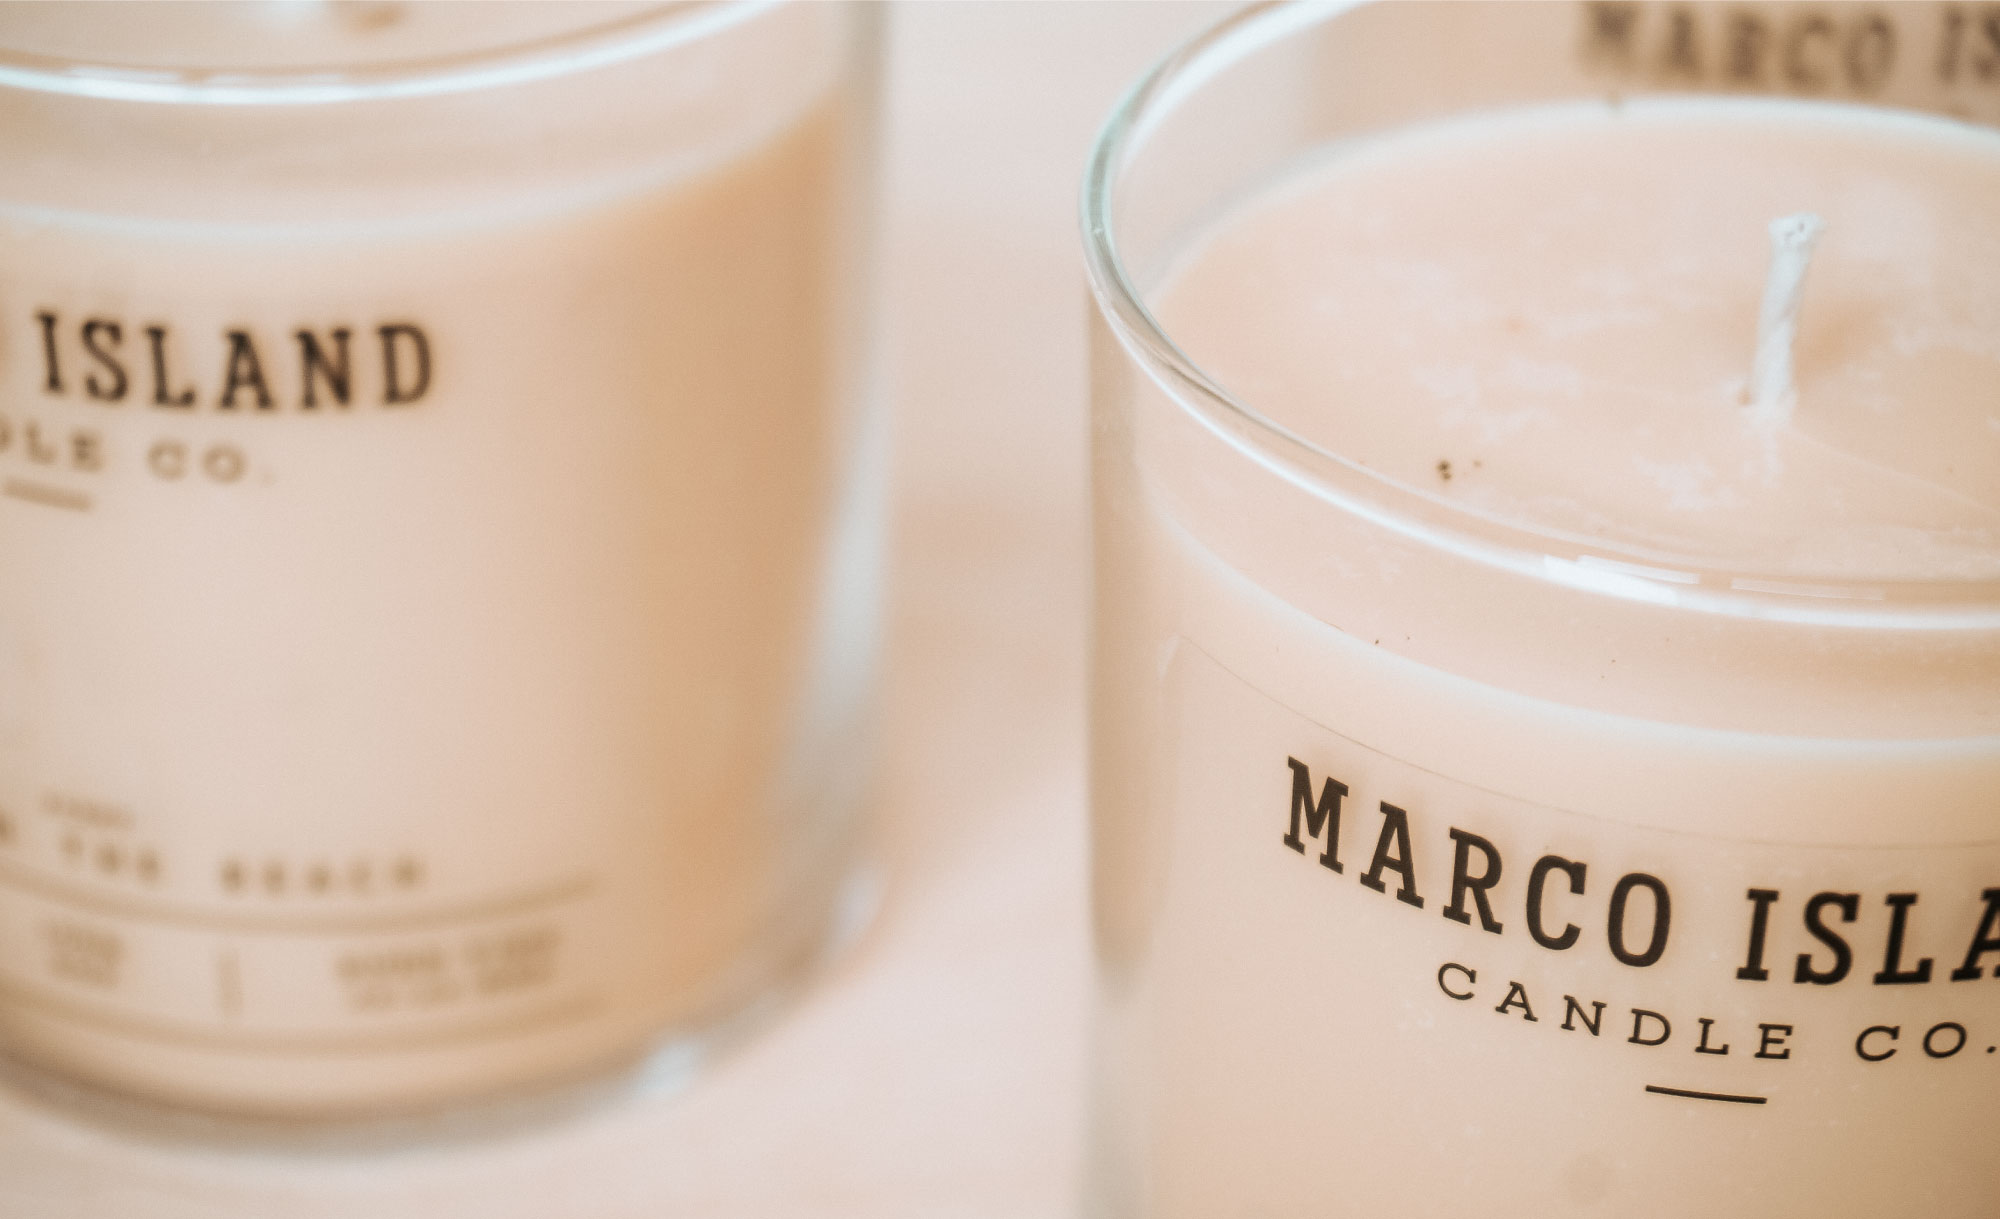 Marco Island Candle Co. Brand and Packaging Design by Viola Hill Studio